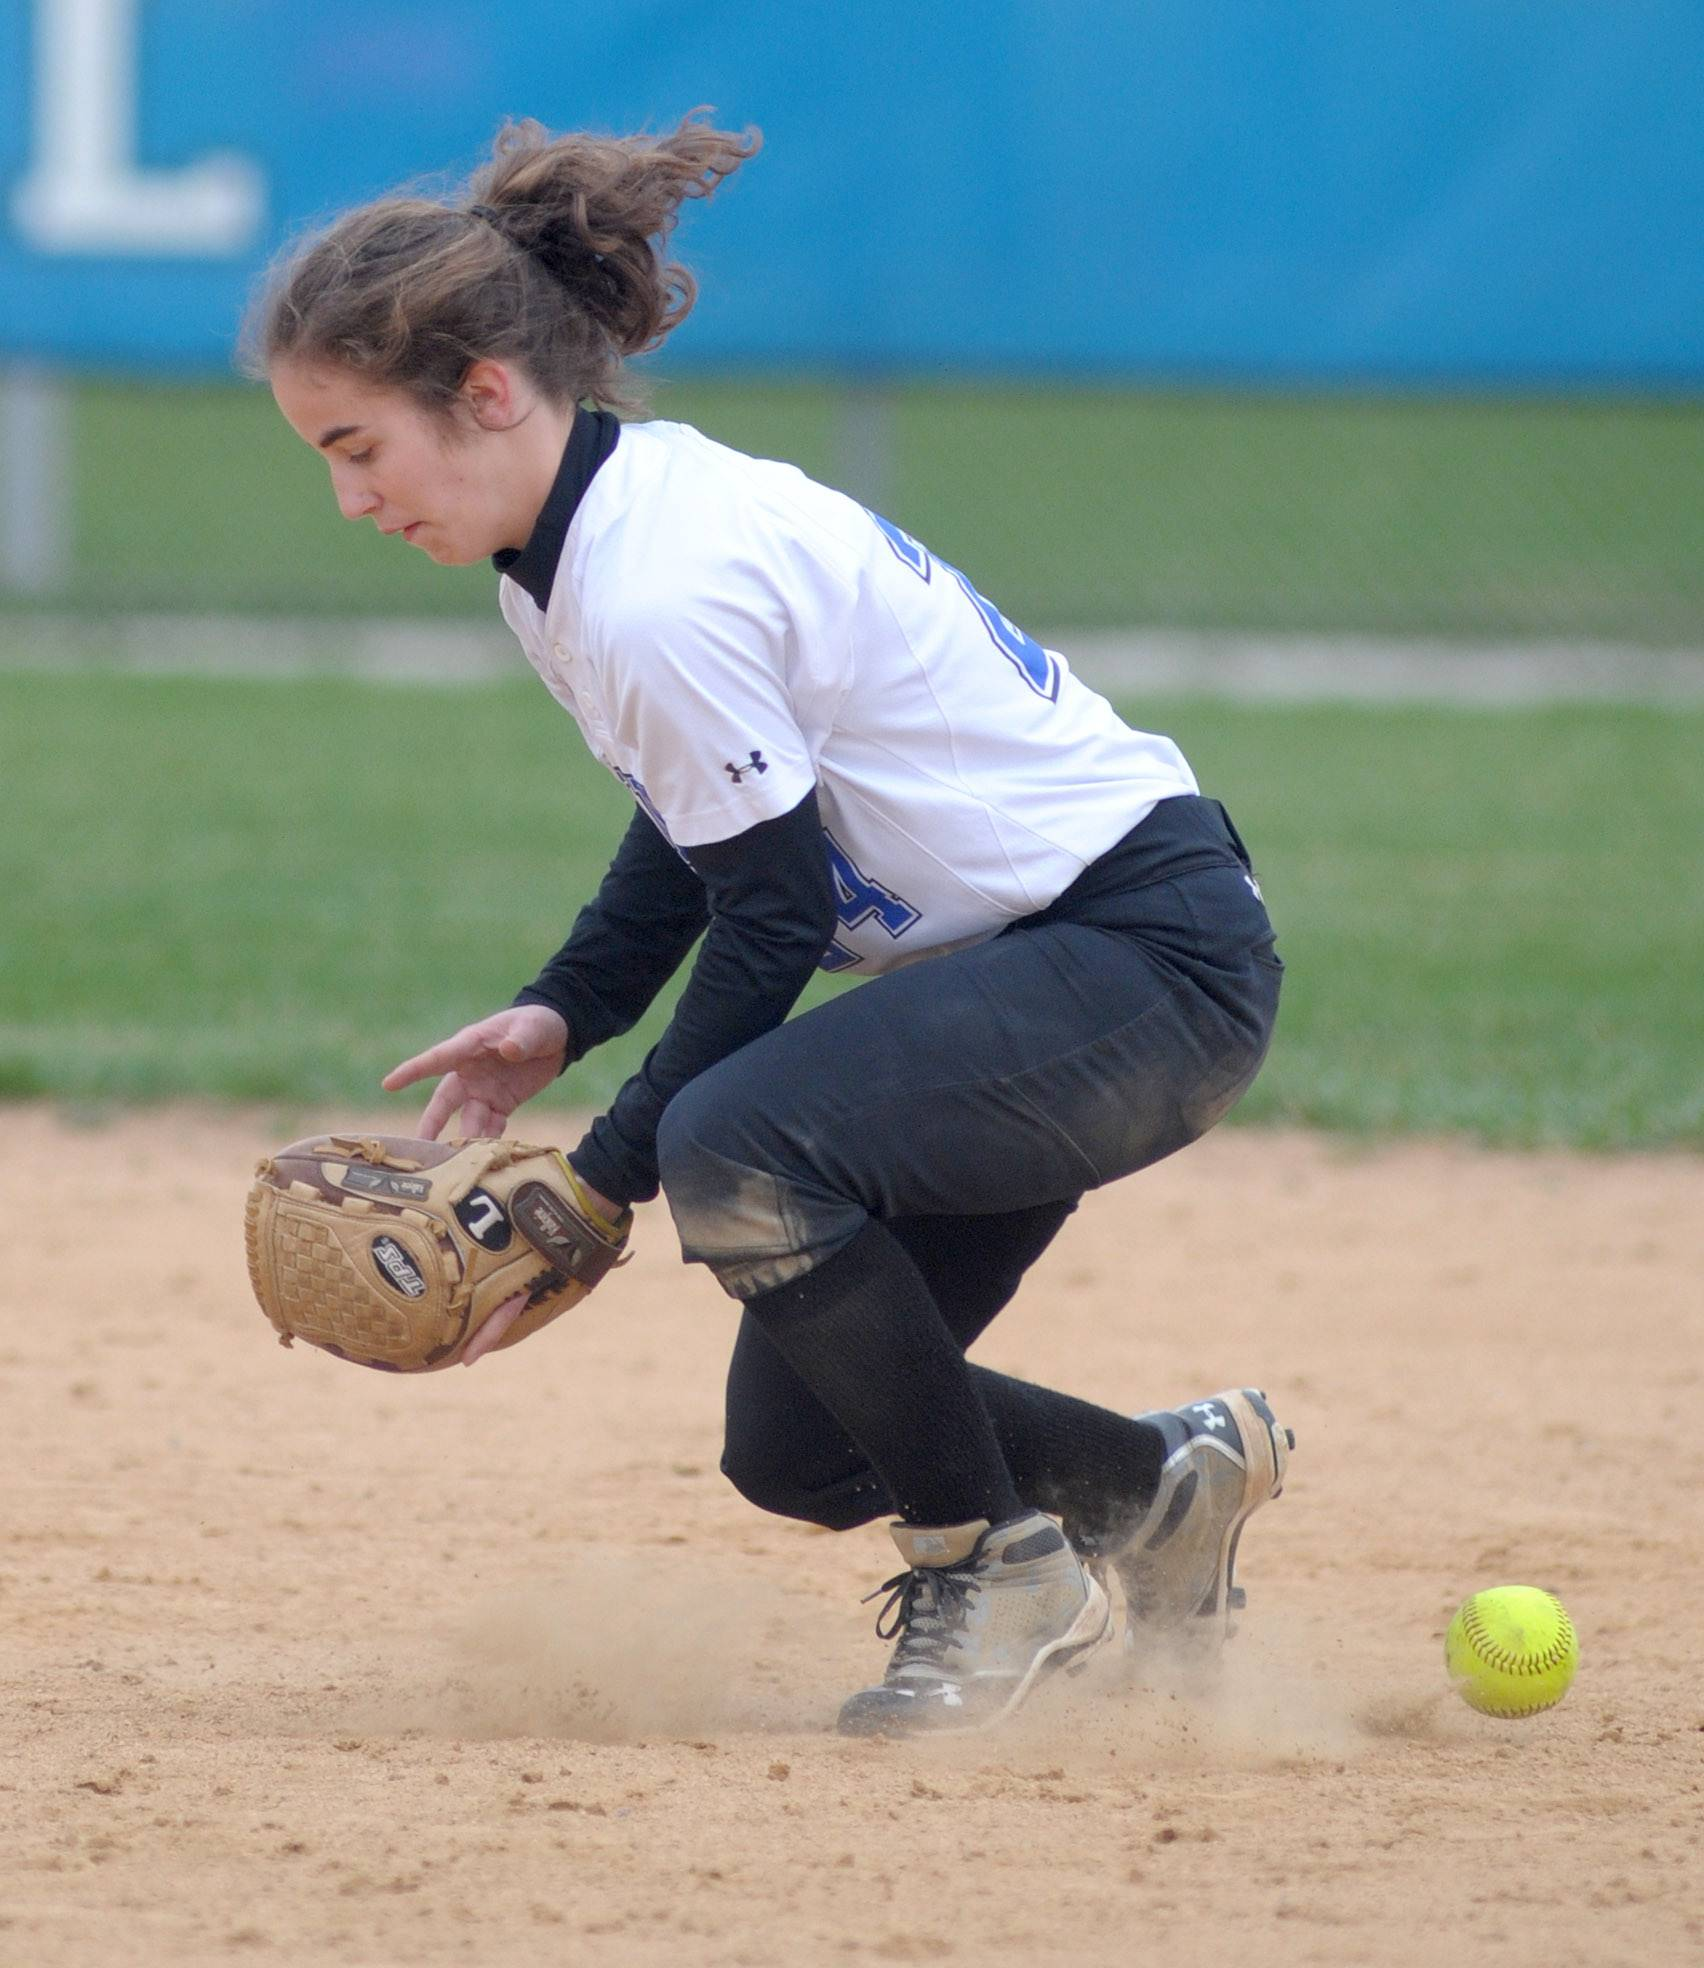 The ball slips between the feet of Jenelle Reilly and past her mitt in the fifth inning vs. Batavia on Wednesday, April 23.